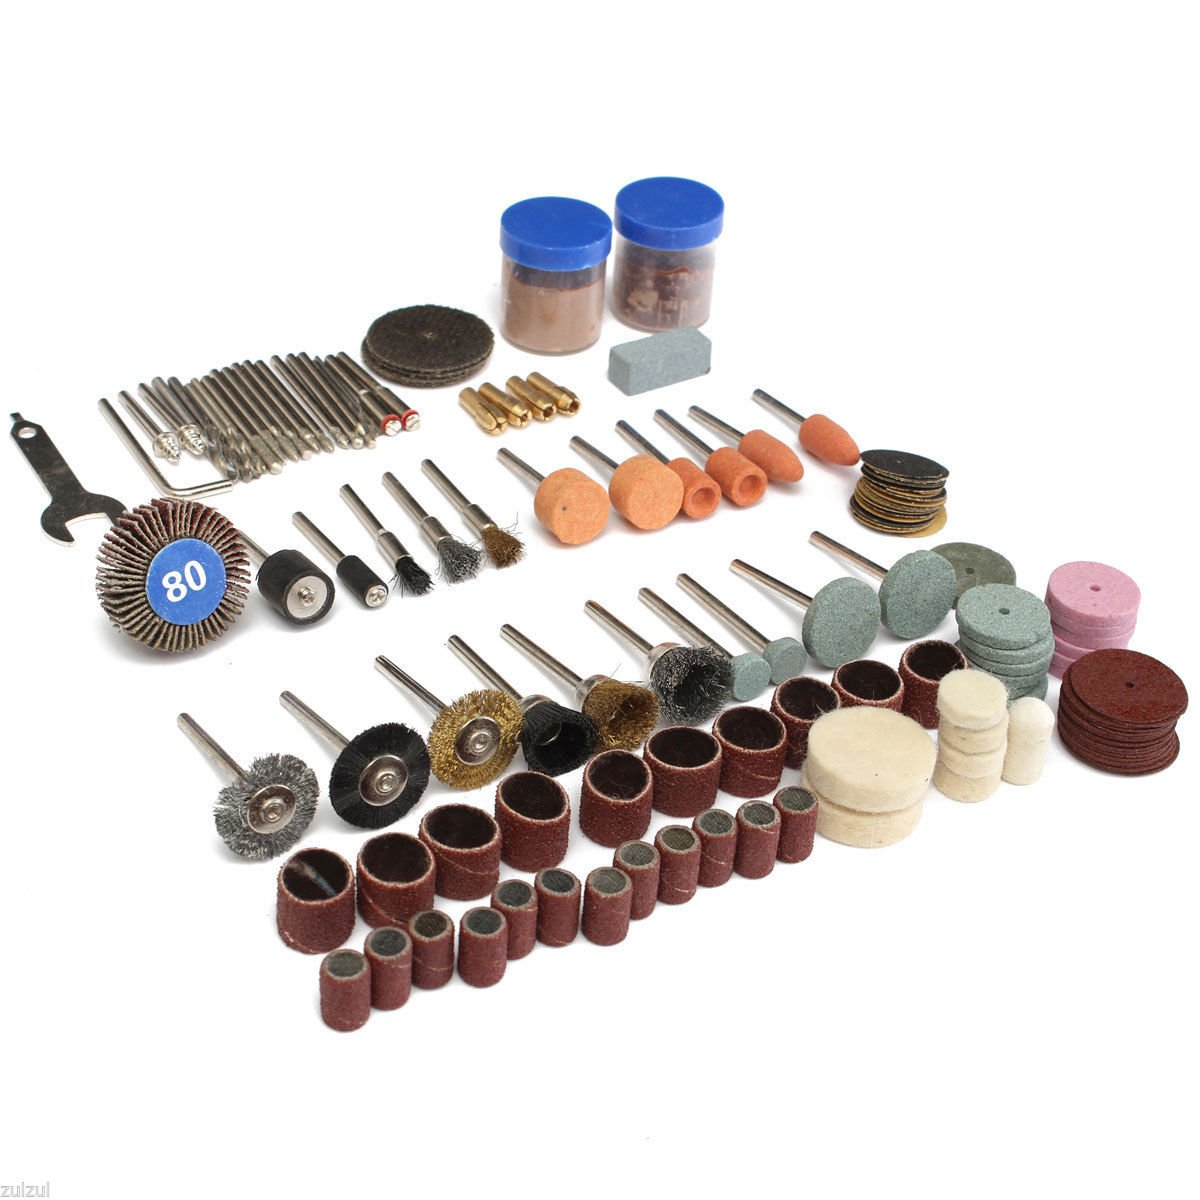 136 PCS Rotary Tool Accessories Set Polishing Kit Kits For Dremel Grinding wood